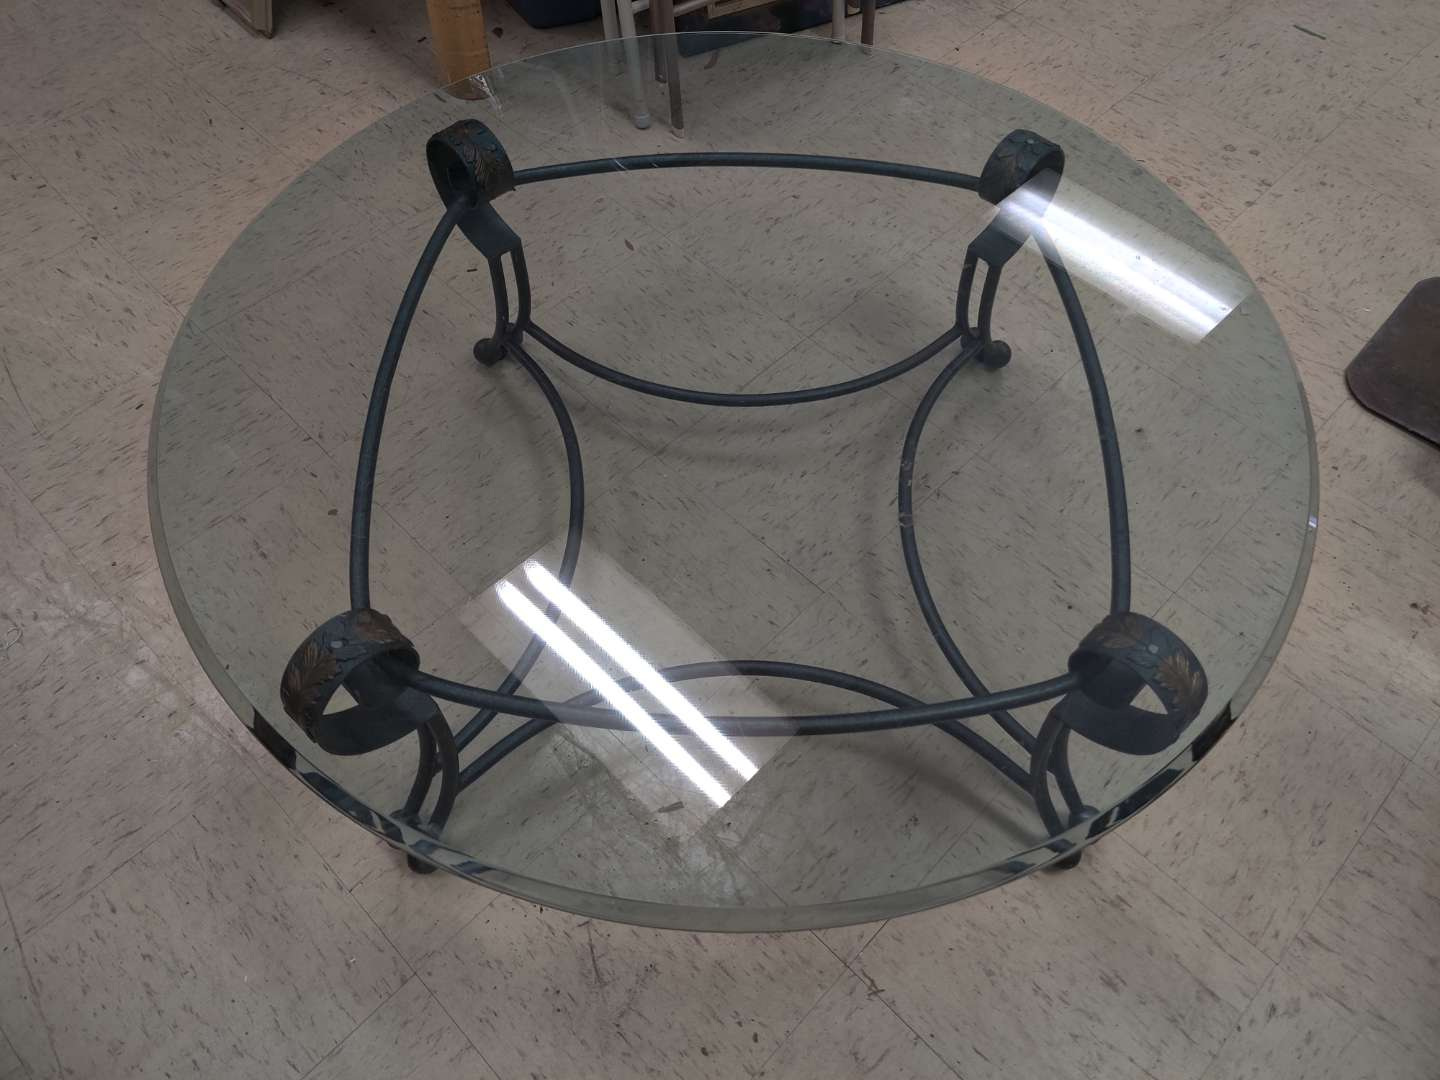 # 183 cocktail table or coffee table glass top iron base 42 in wide glass is 3/4 in thick